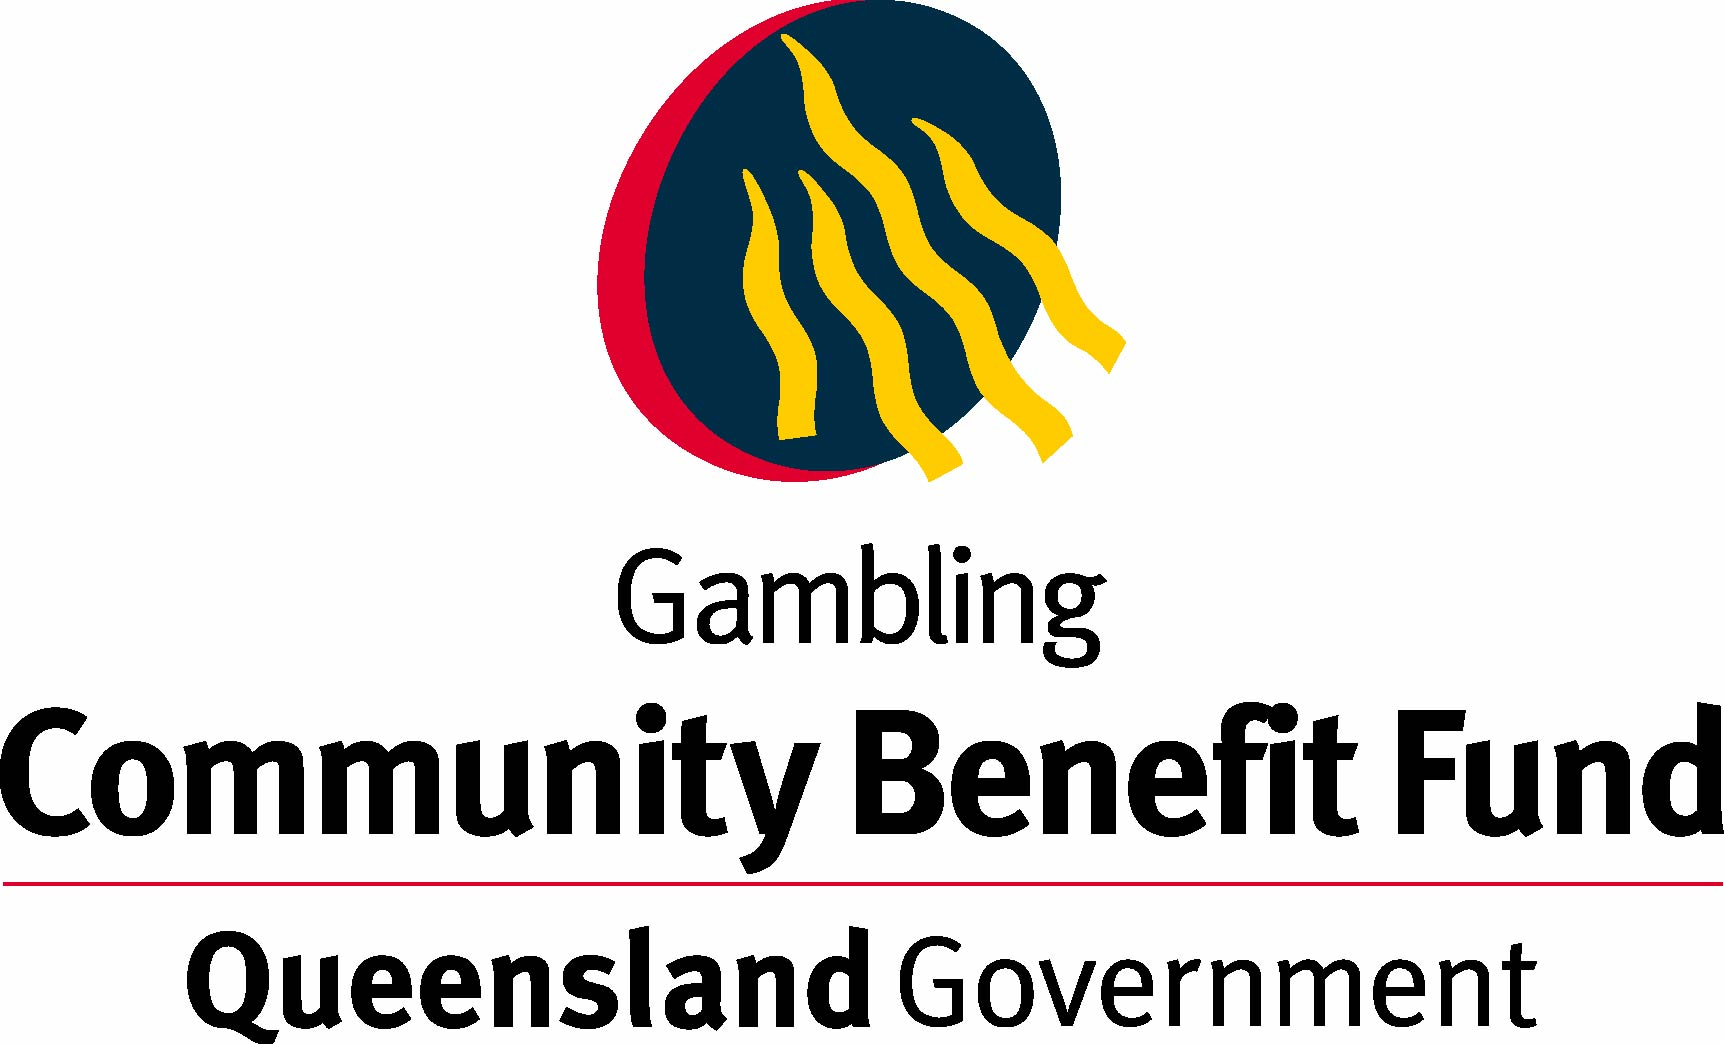 Gambling community benefit fund 2018